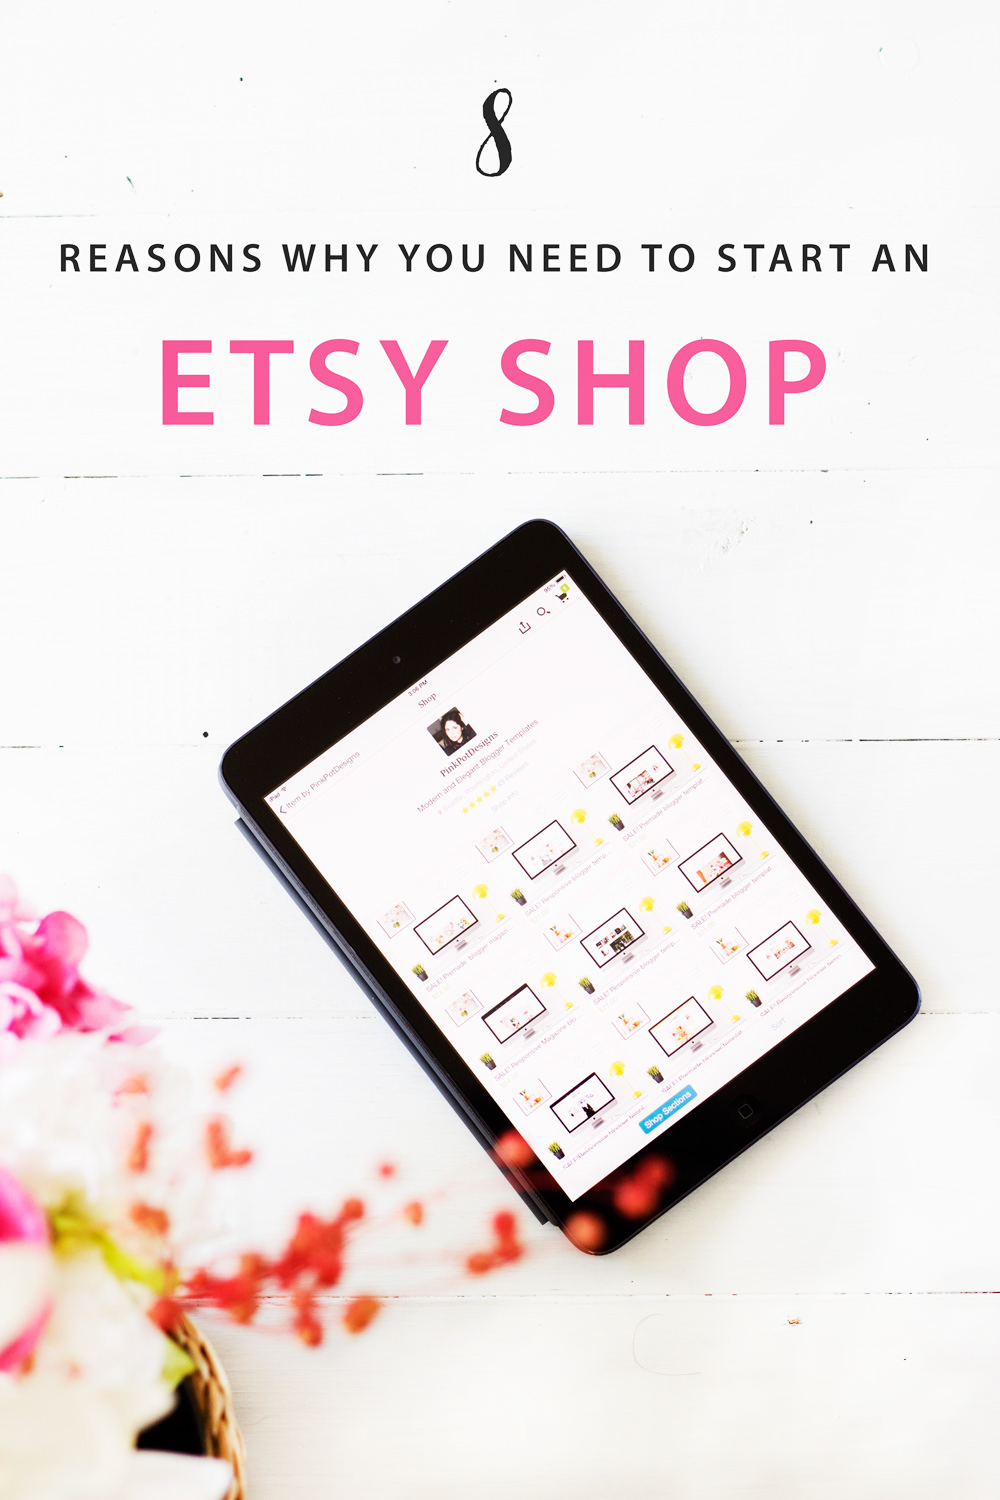 Benefits and Uses of starting an etsy shop for your business, learn why etsy may be an amazing starting point for your business! Start an etsy shop today!